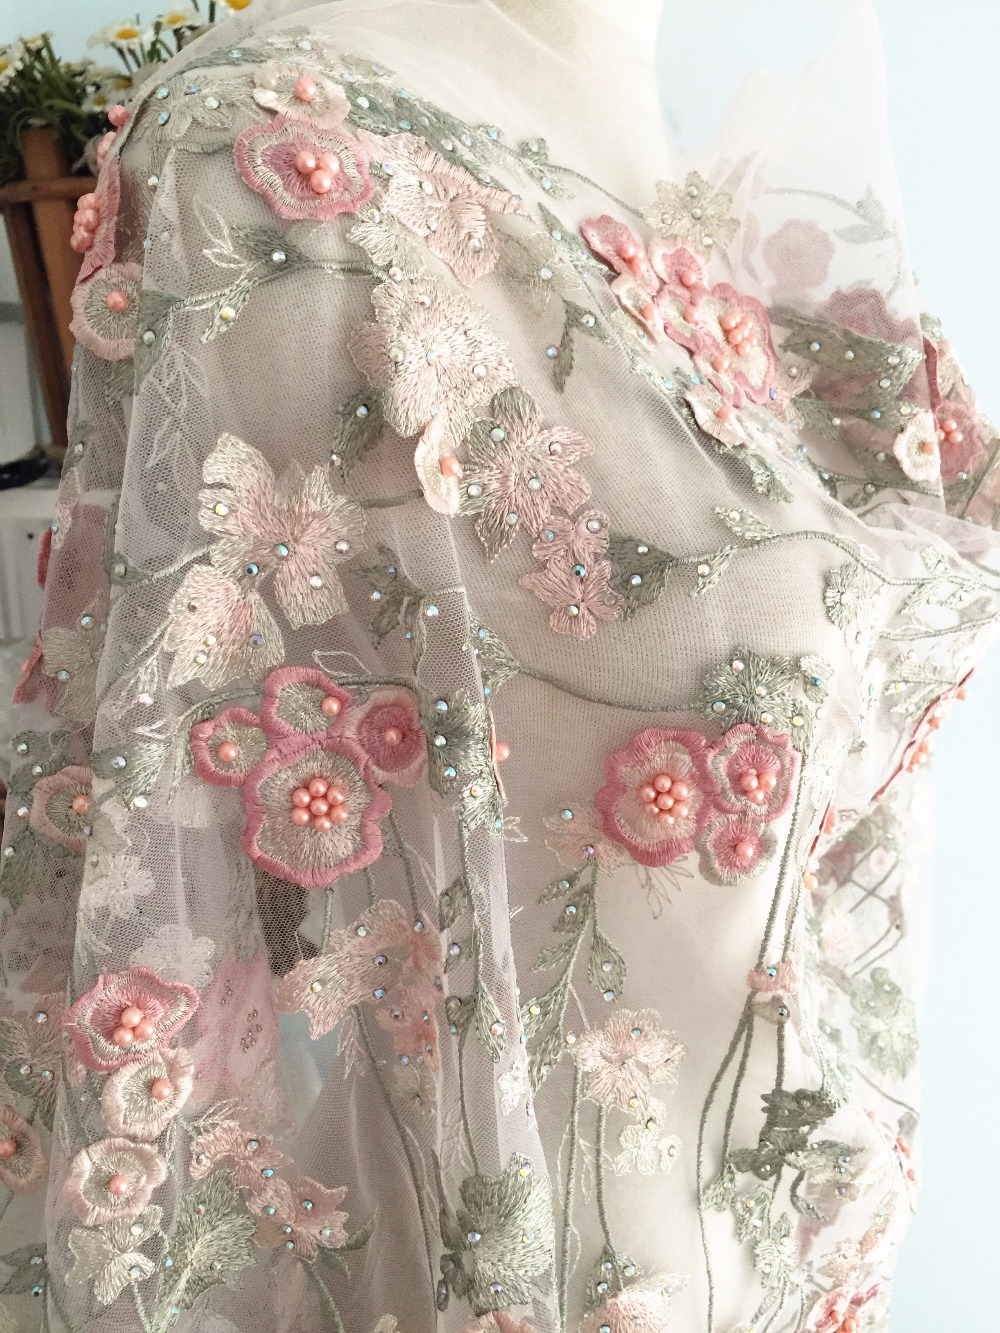 1 Yard Lux Pink Appliqued 3D Beaded Sequined Lace Fabric with Fine Embroidery Off White Tulle